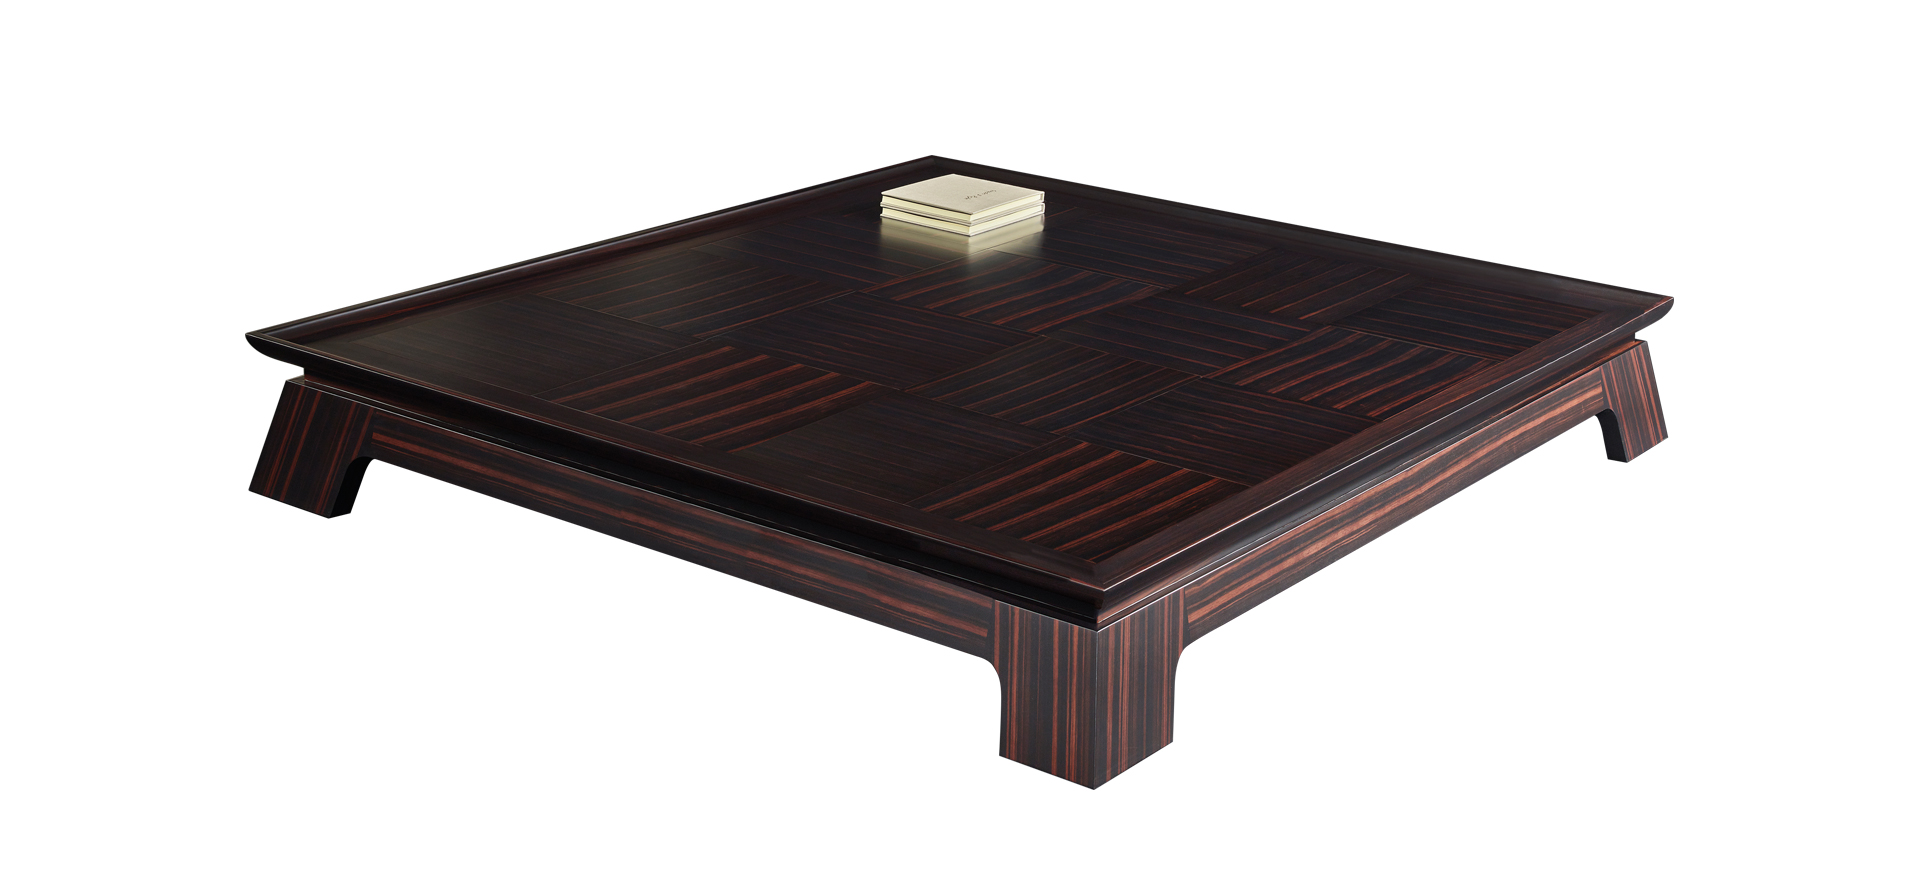 Plenilune is an impressive wooden coffee table available with leather, bronze or marble top interior, from Promemoria's catalogue | Promemoria